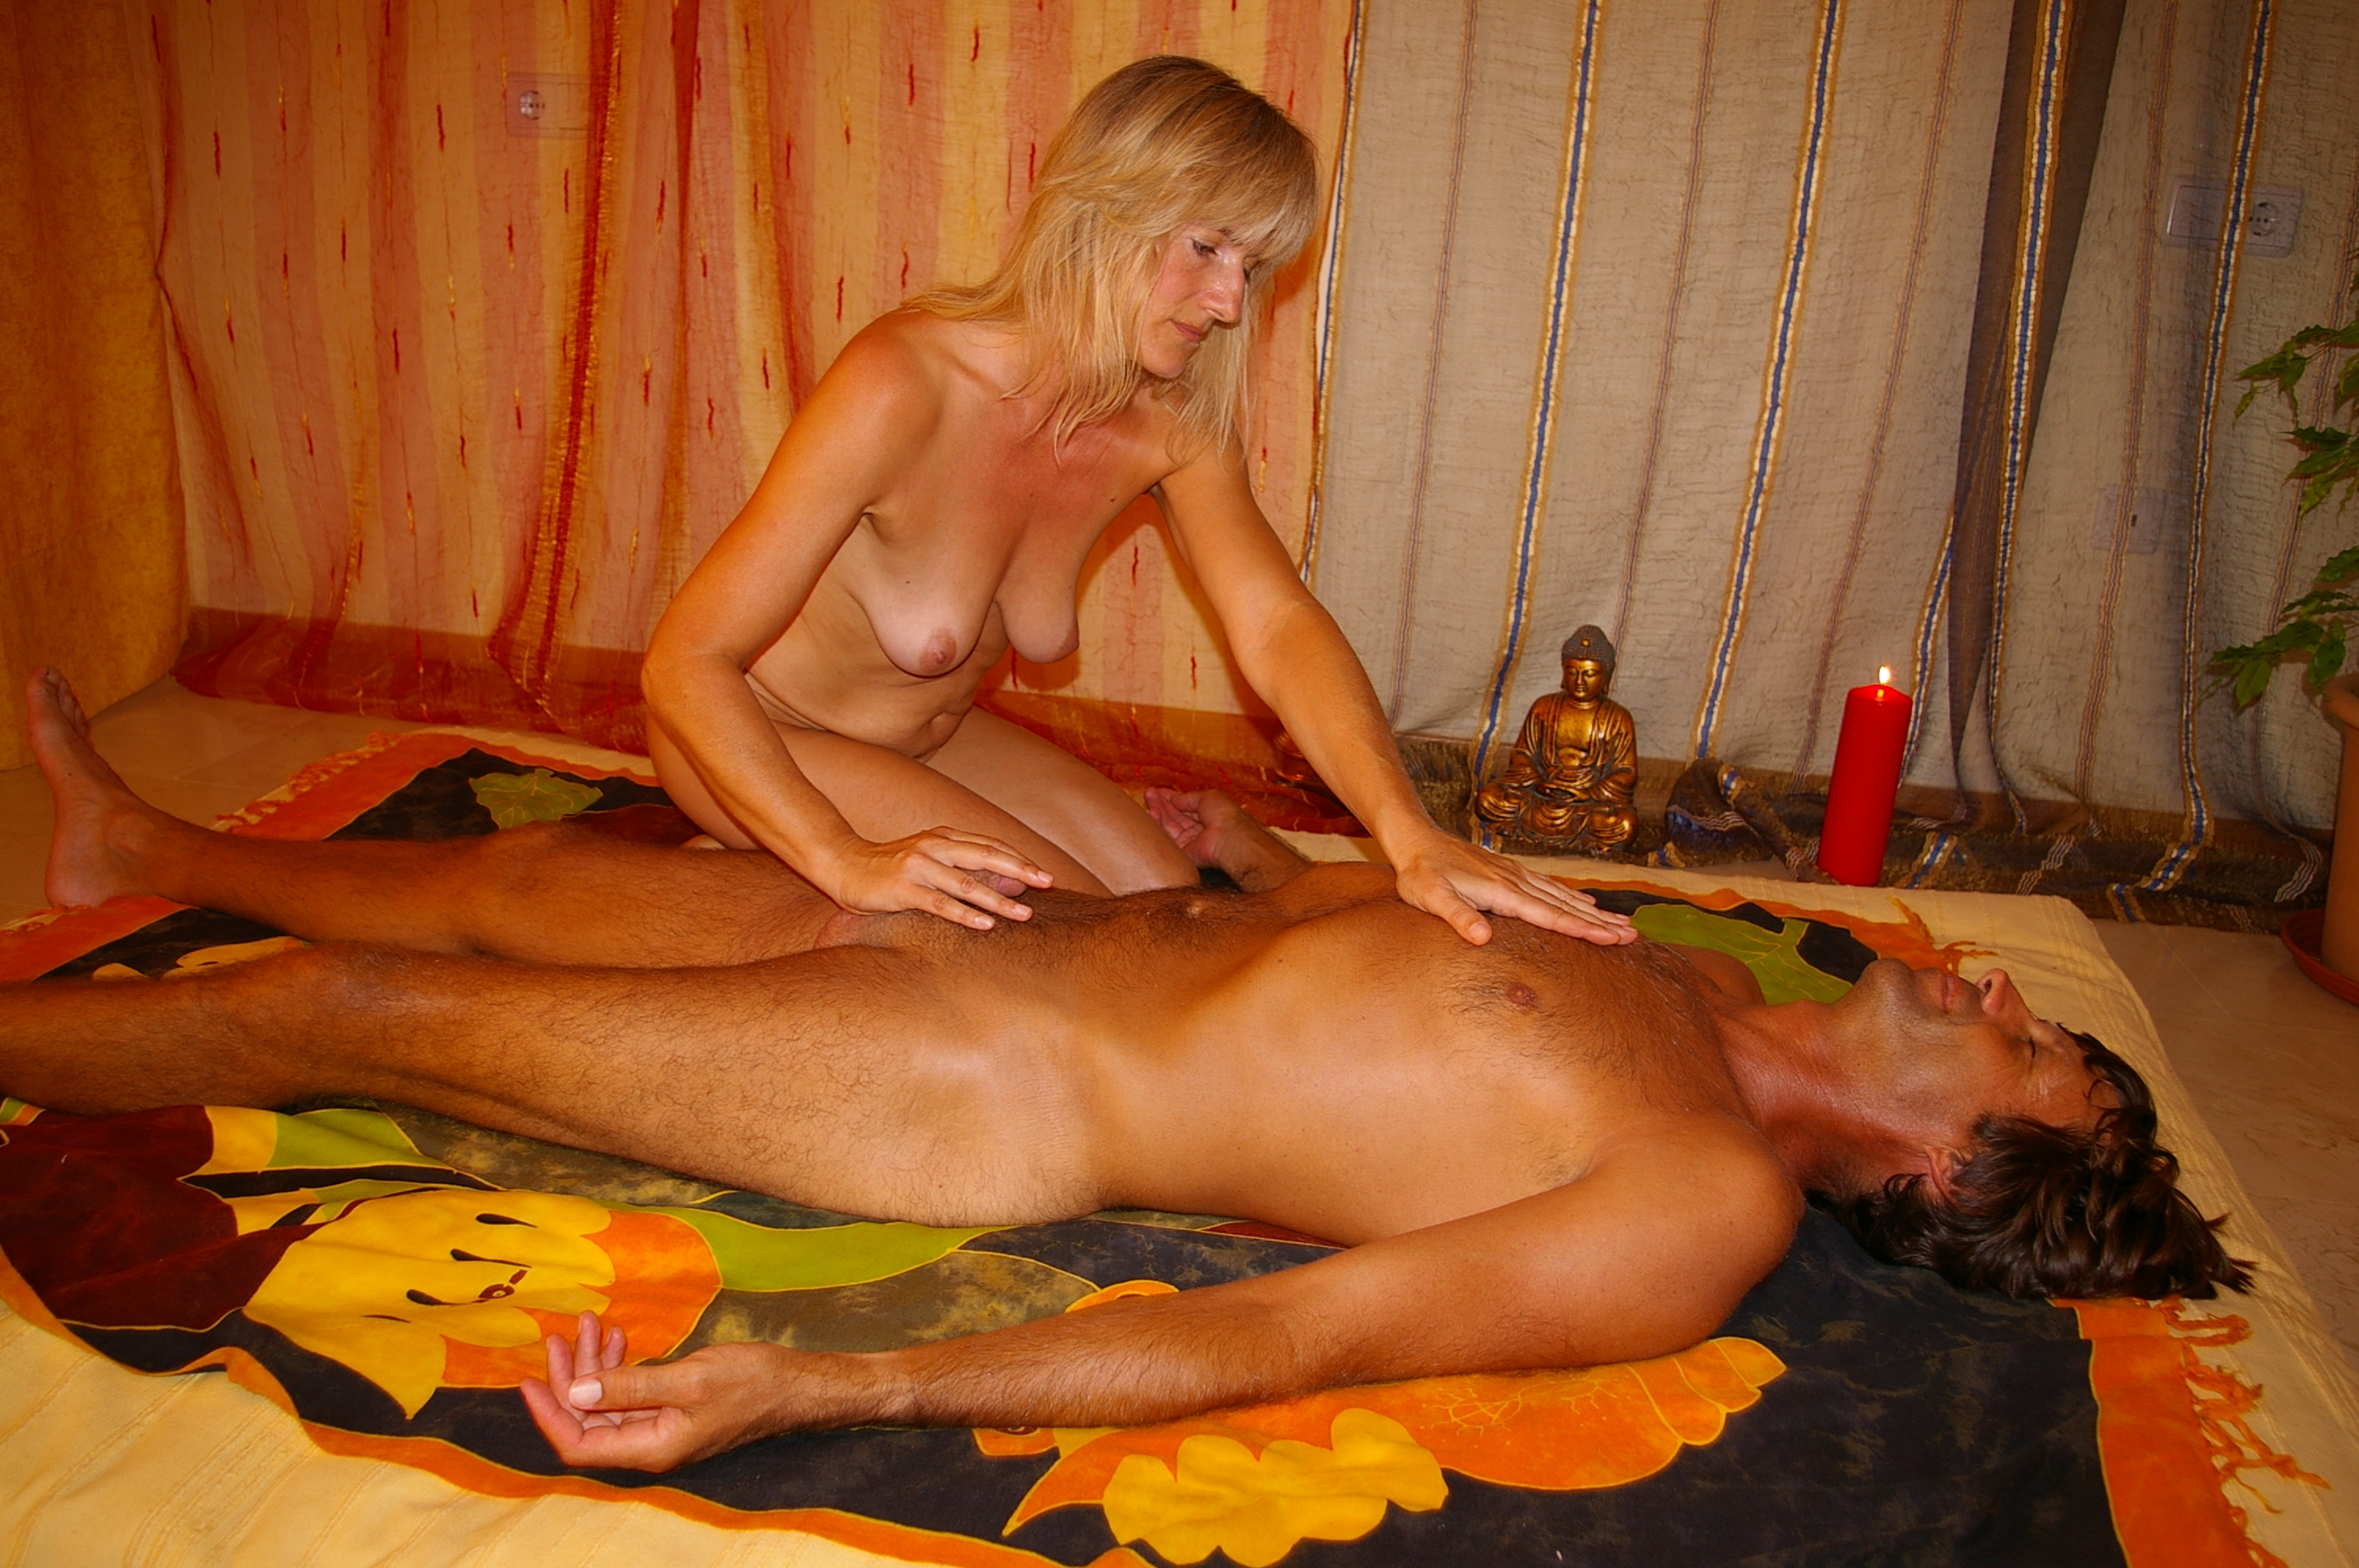 sex vidoes tantrisk massage stockholm